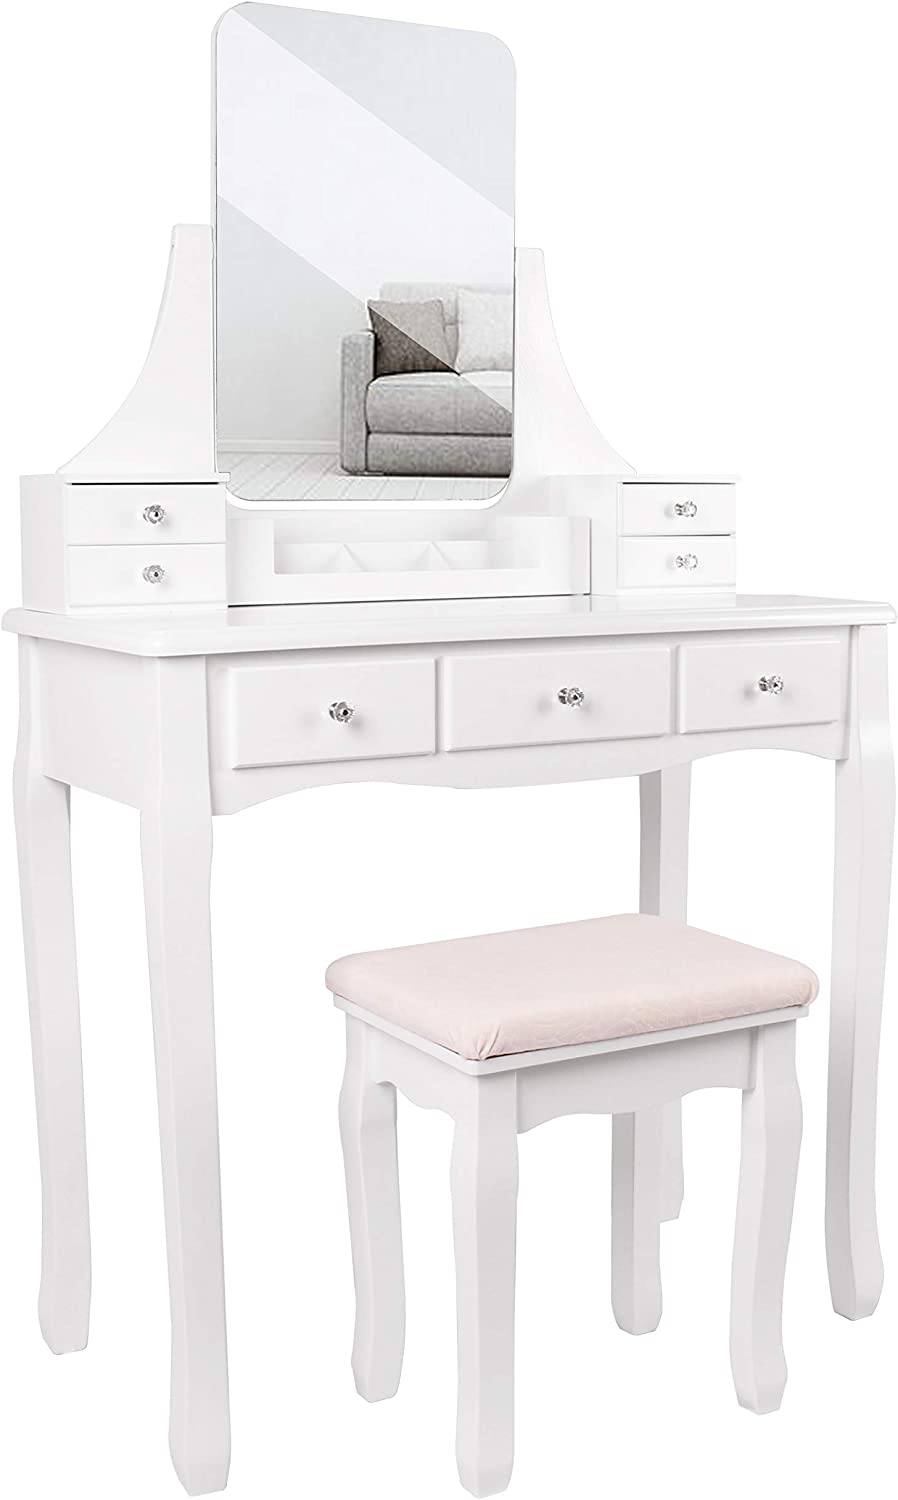 Vanity Table Set with Large Frameless Mirror, Makeup Dressing Table Set for Bedroom, Bathroom, 7 Drawers, Cushioned Stool, White